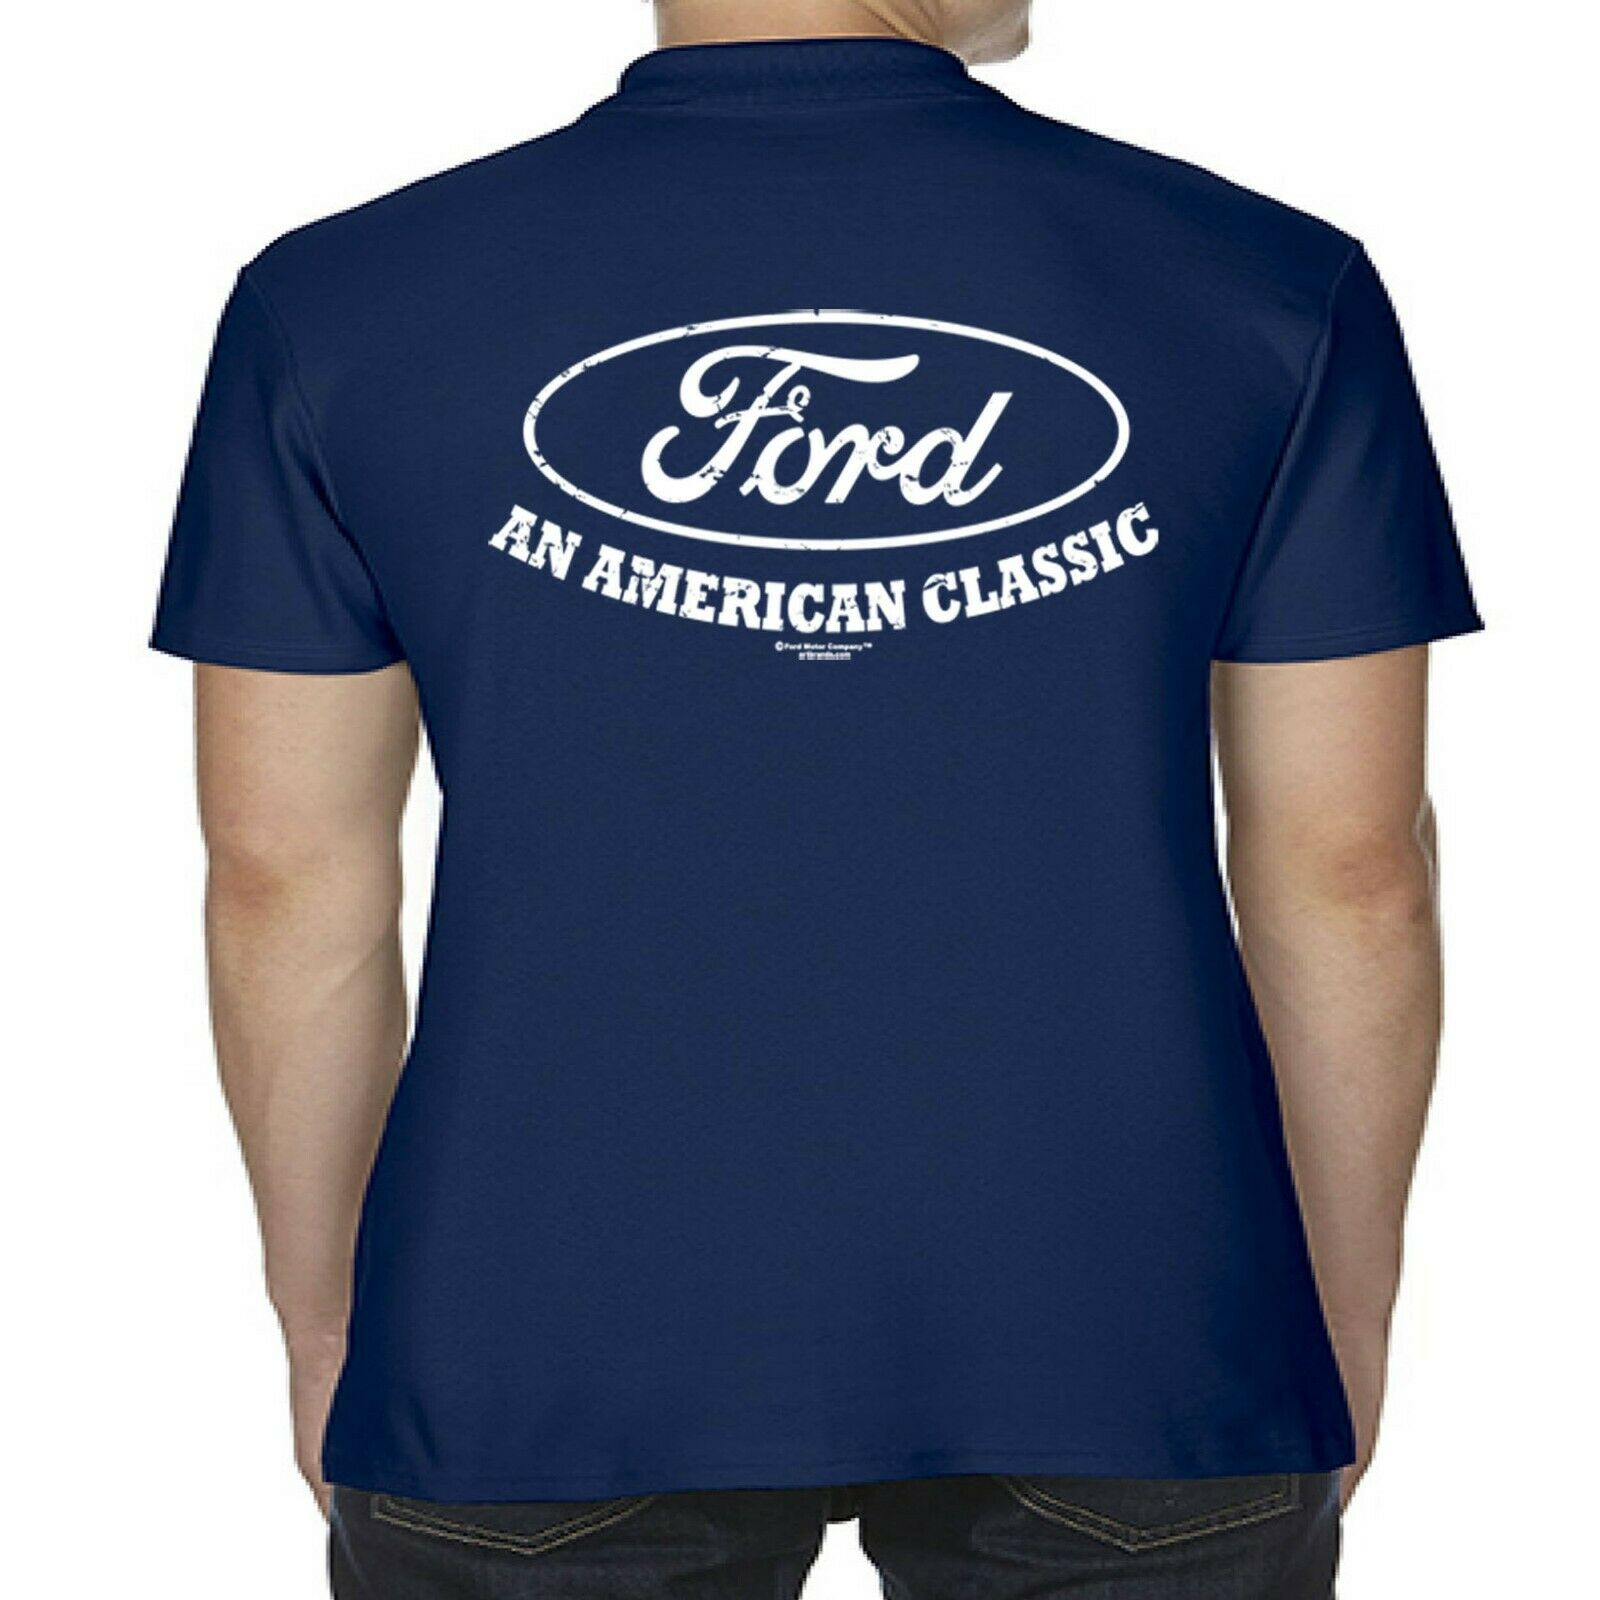 Mens Licensed Ford Polo Shirt American Classic Vintage